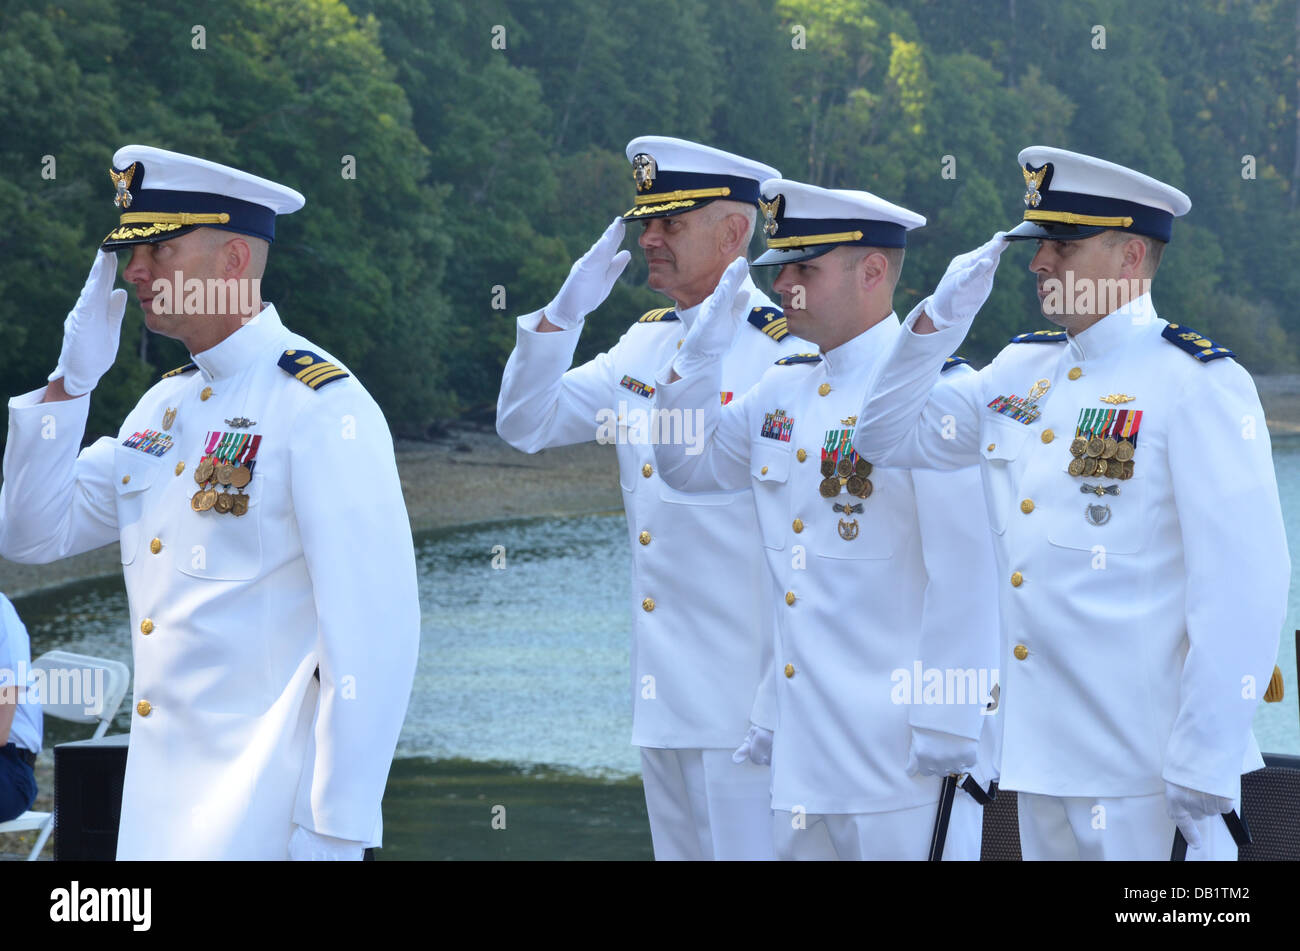 Members of a change-of-commande official party for Coast Guard Cutter Sea Fox, an 87-foot patrol boat homeported - Stock Image